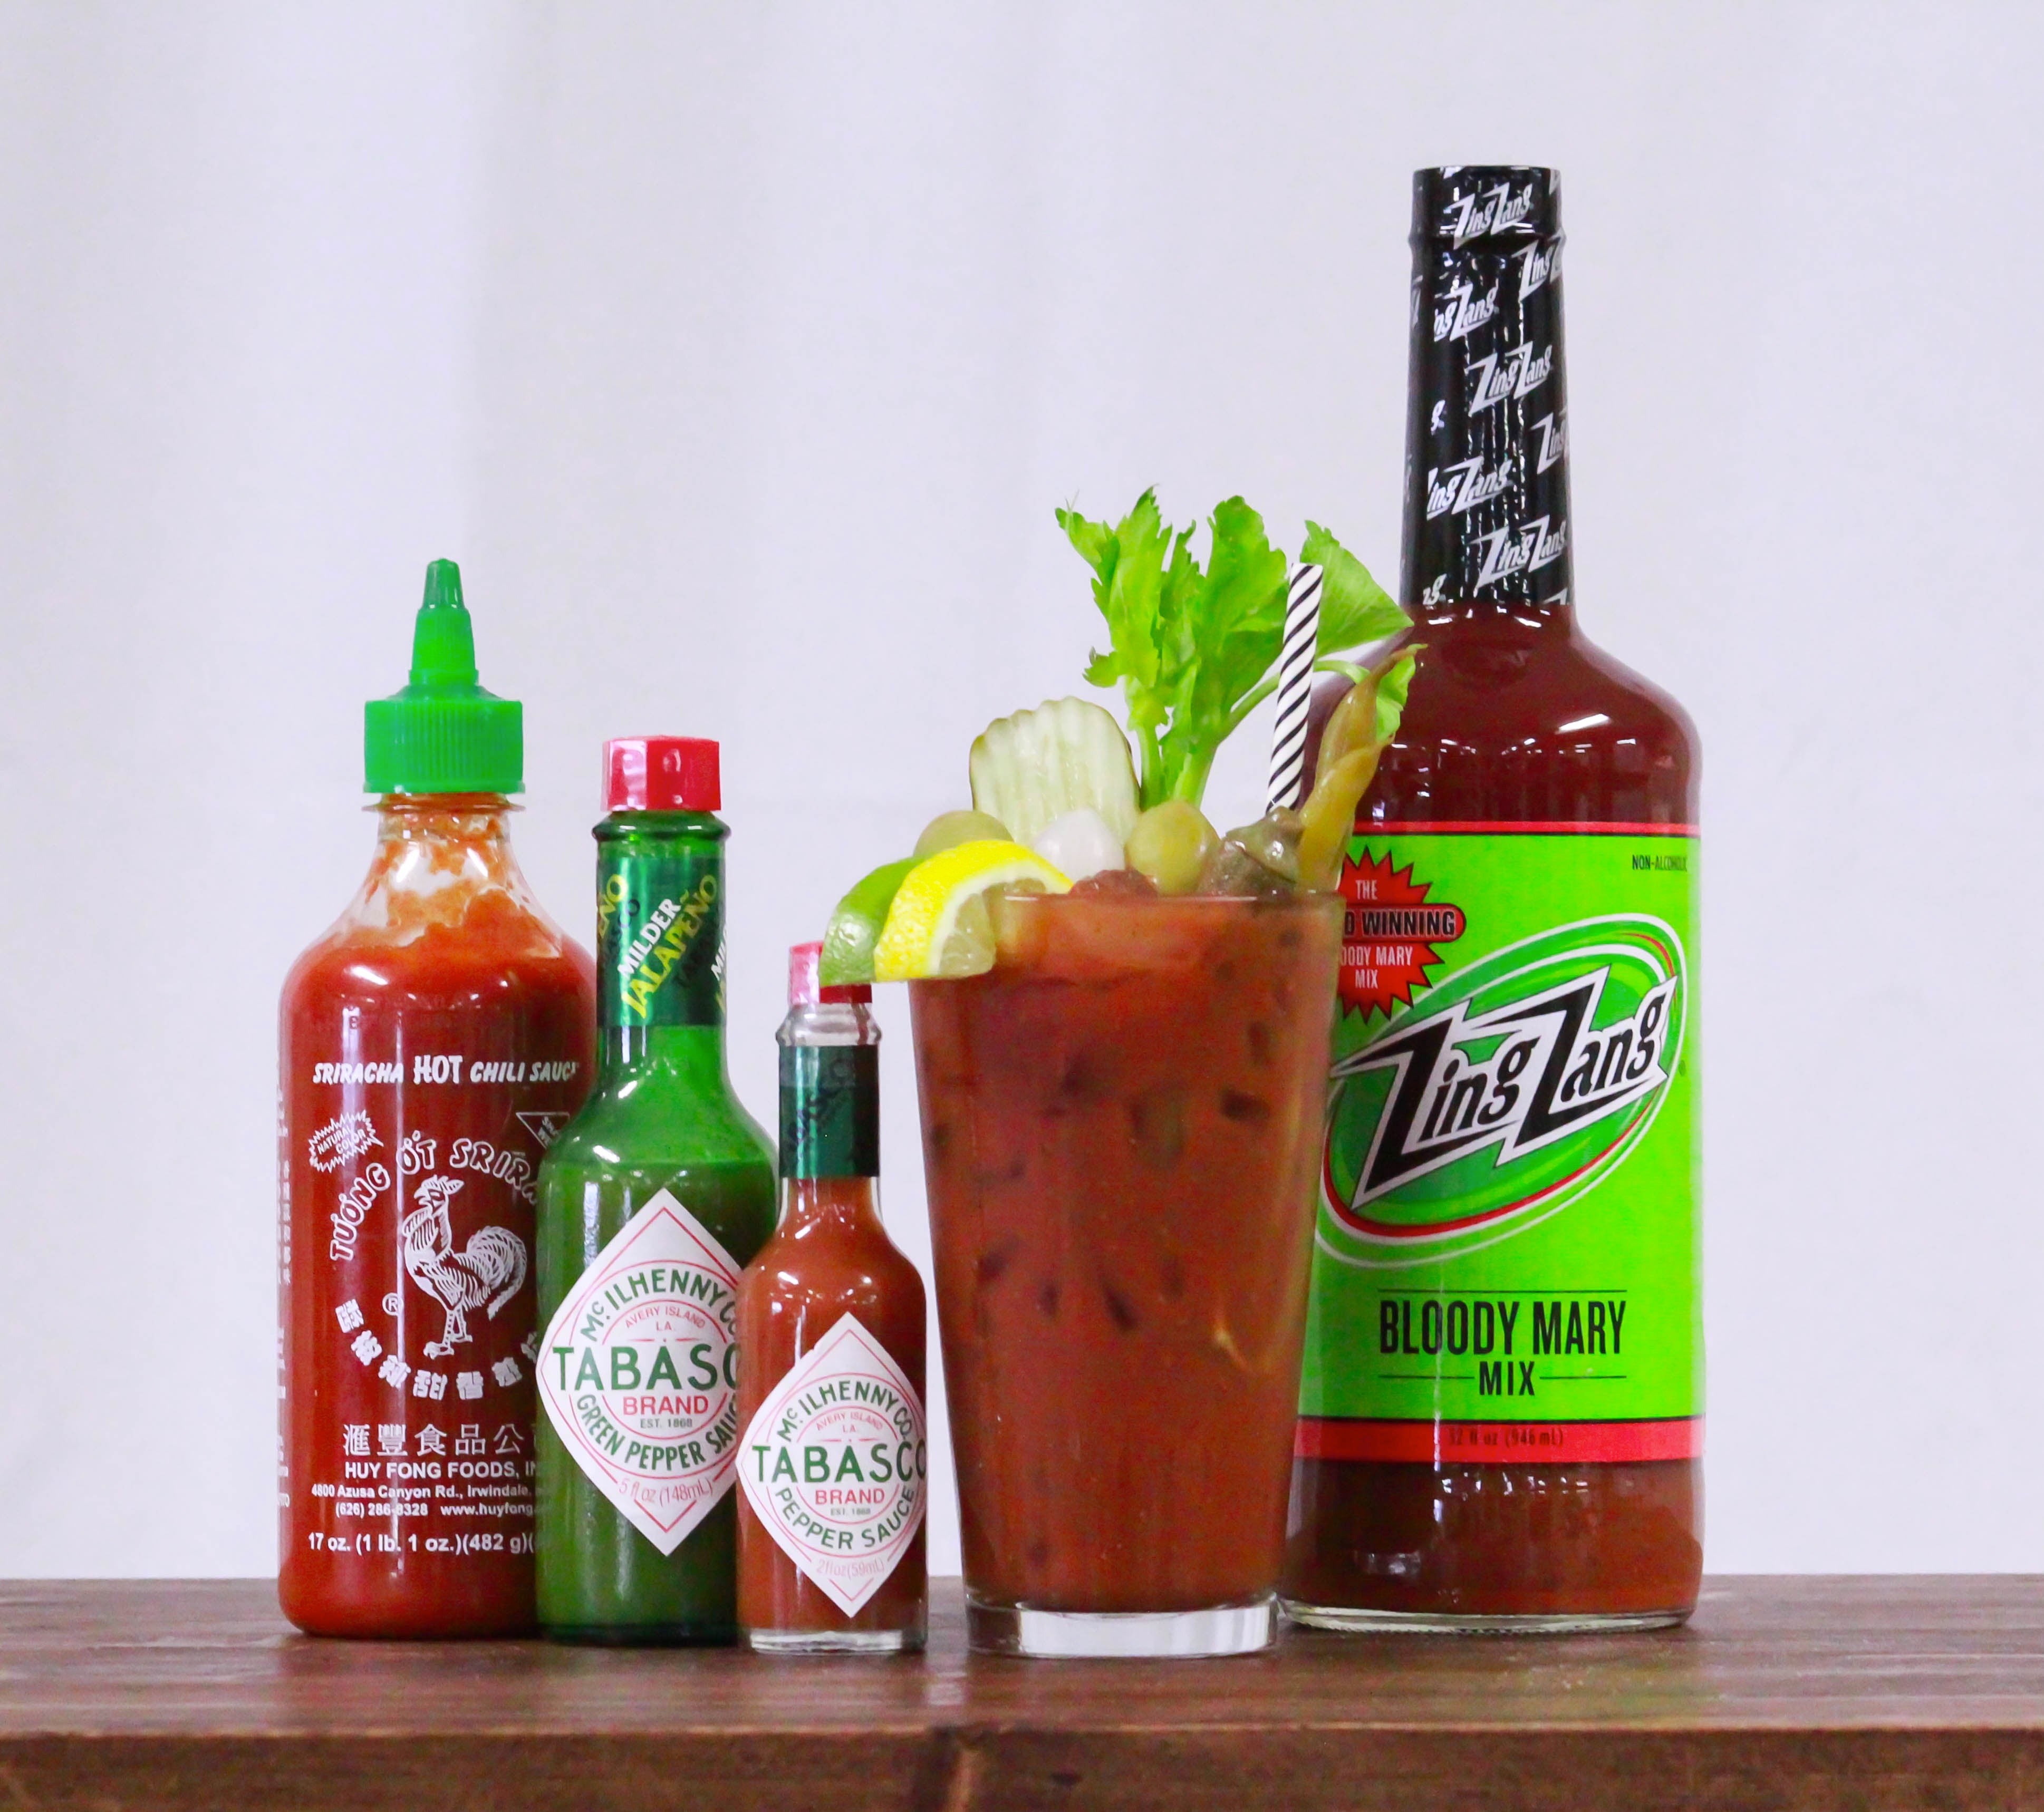 Bloody Mary (8 Cocktails)